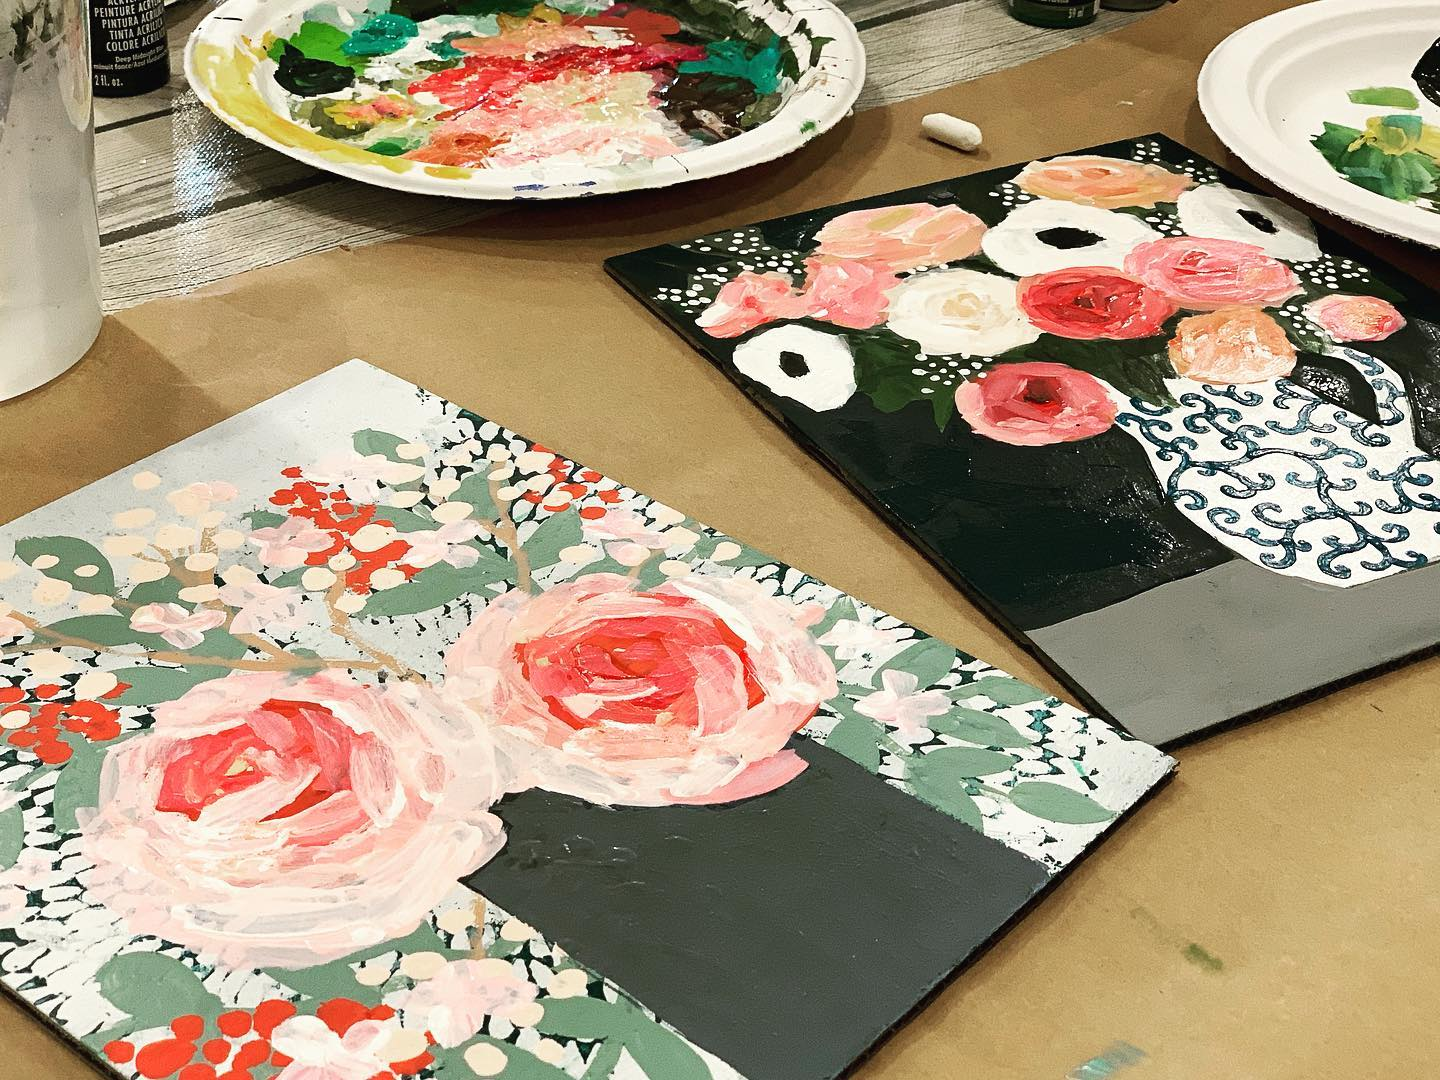 The Little Shop Peinture february flowers - floral paintings and supplies i use